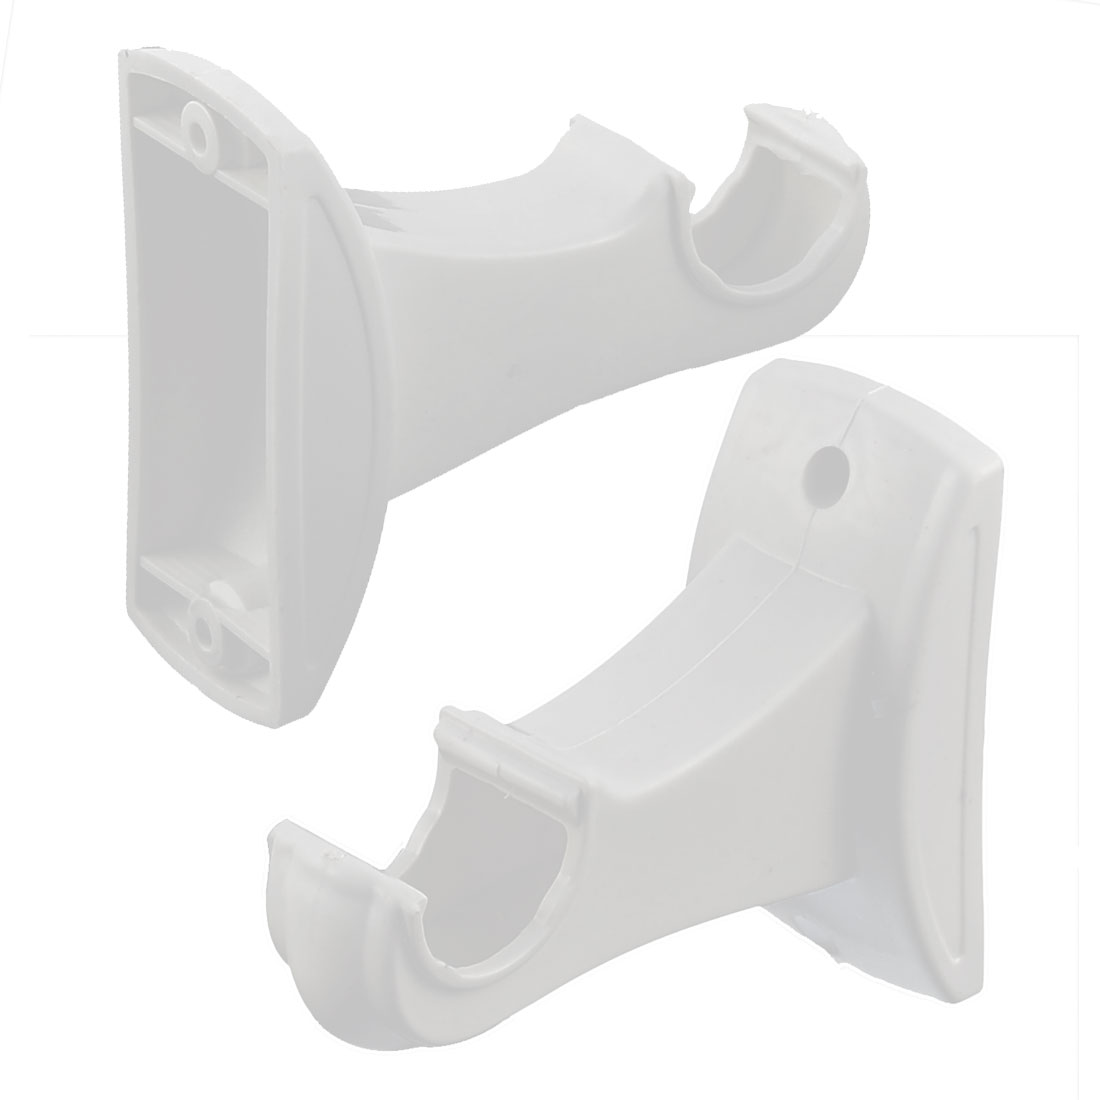 Plastic Hollow Wall Mount Single Groove Drapery Curtain Pole Bracket White 2pcs